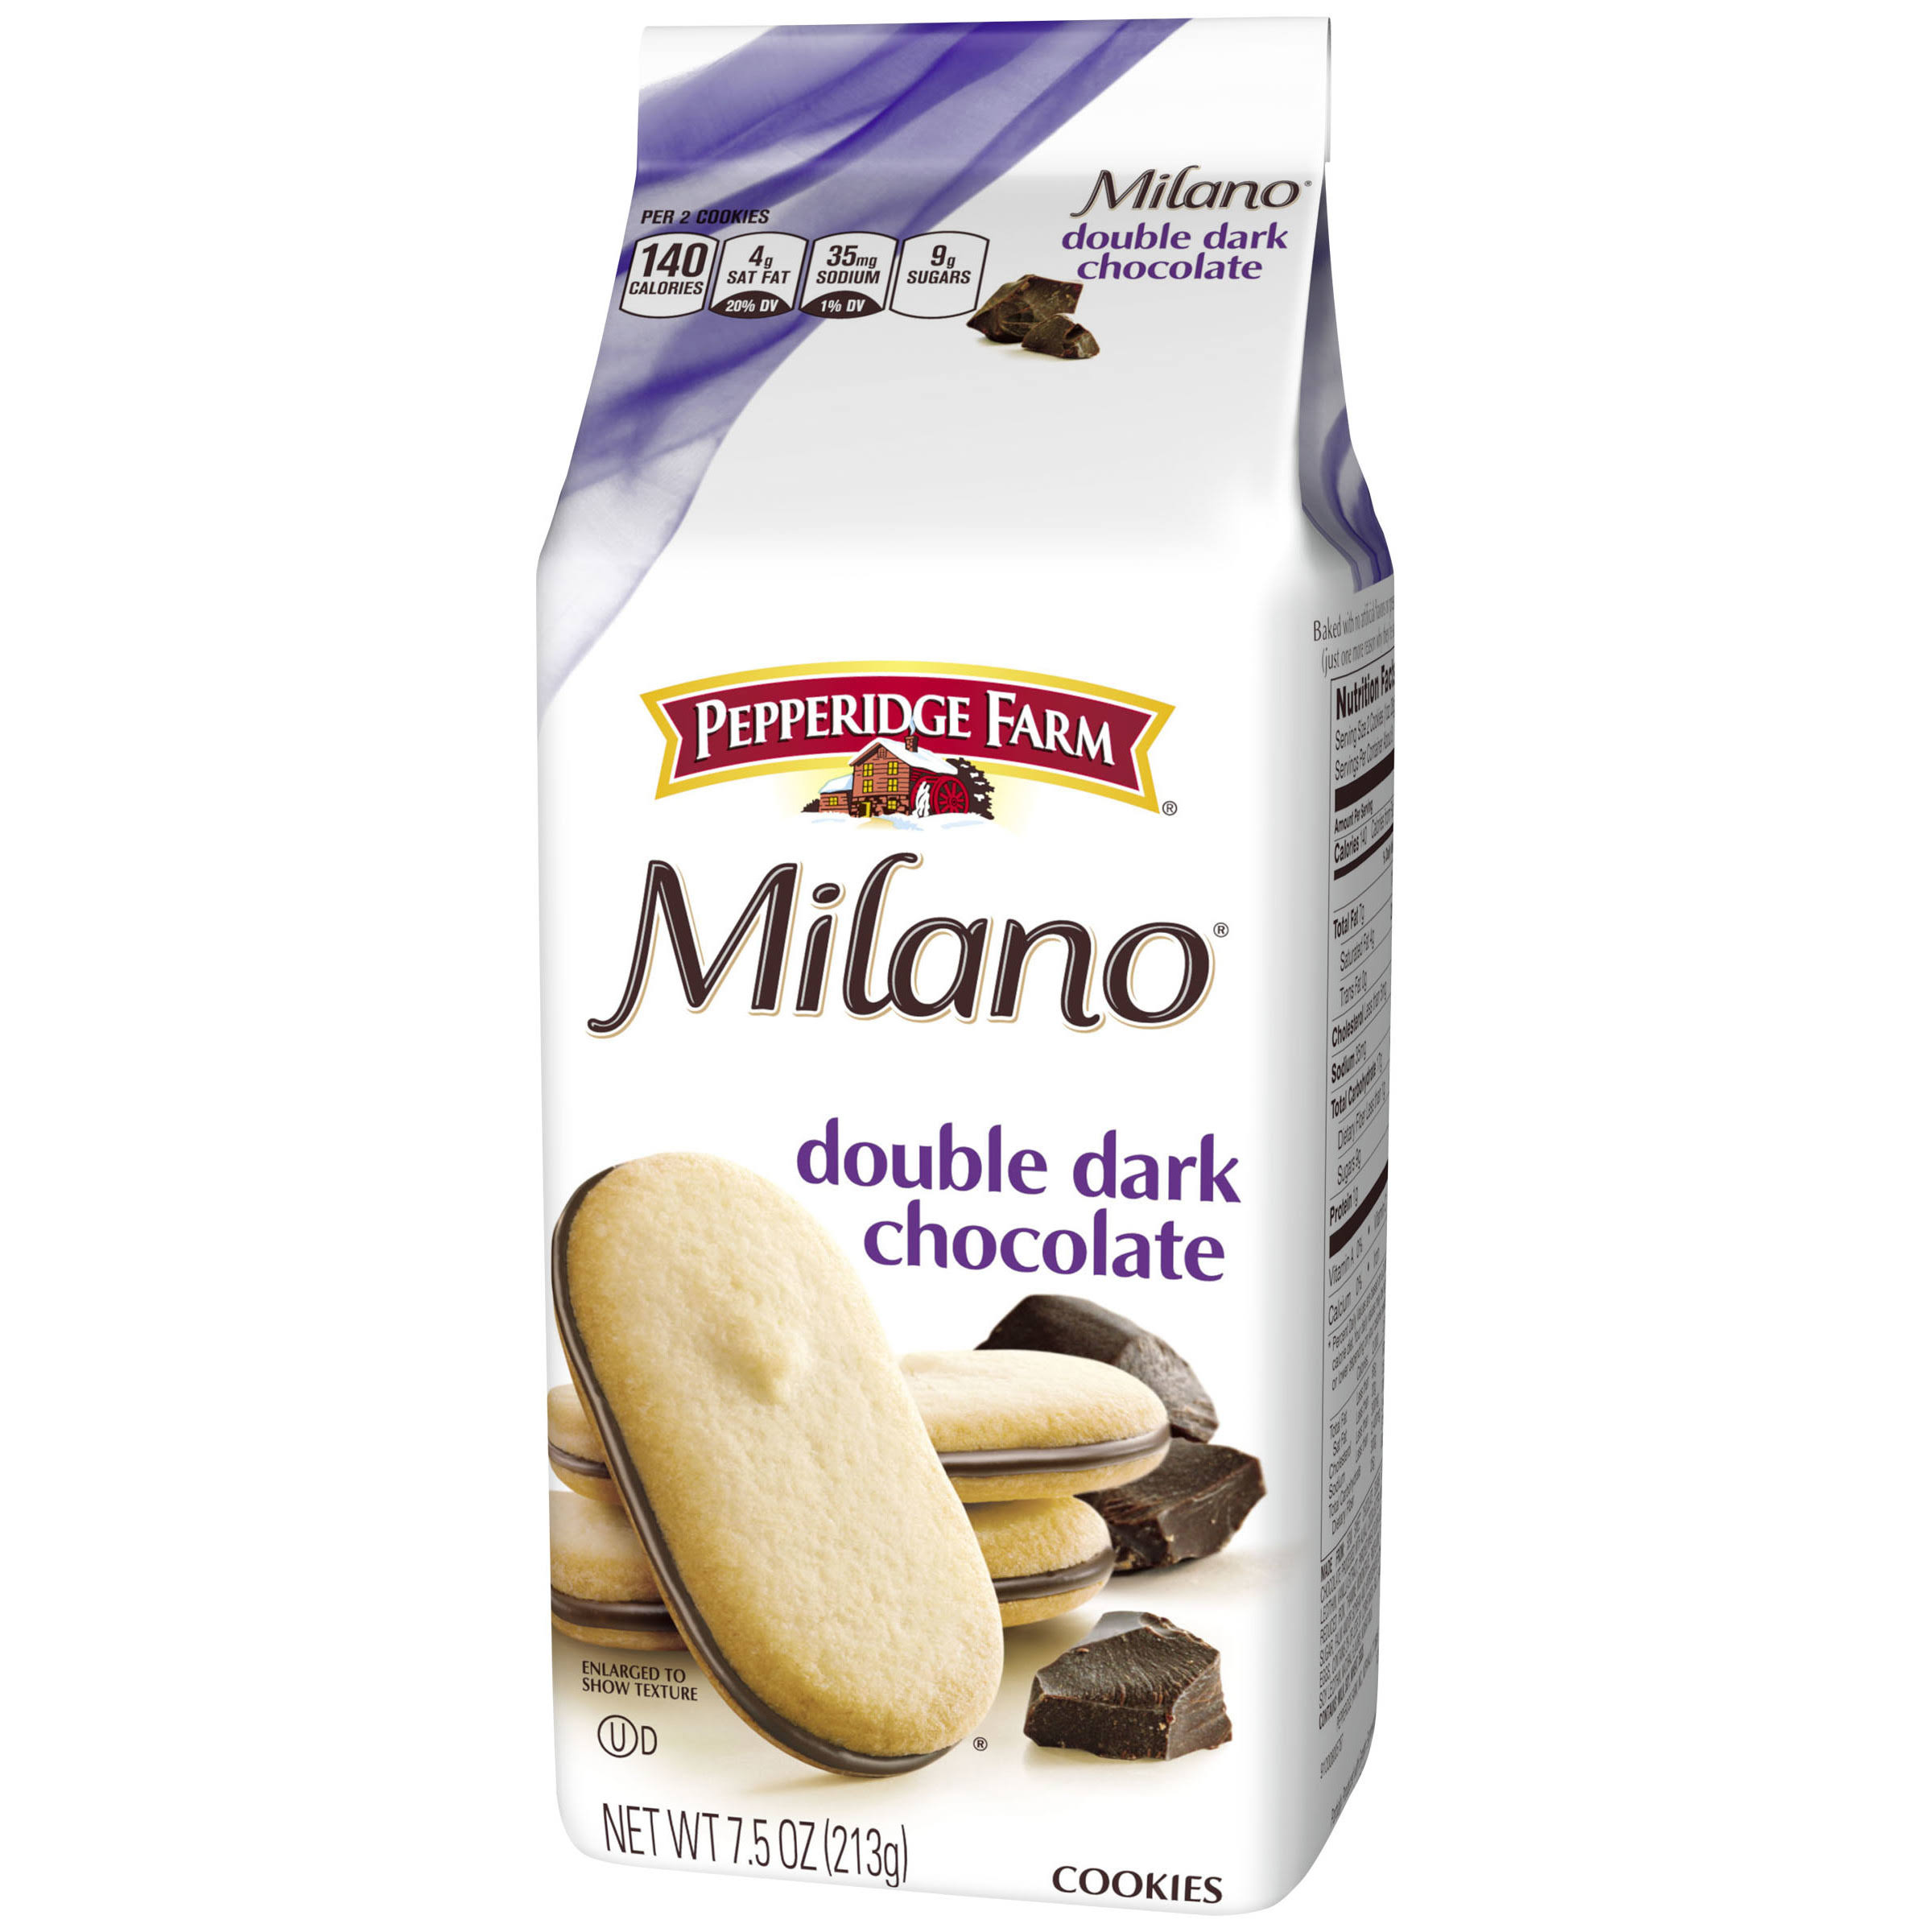 Pepperidge Farm Milano Double Chocolate Cookies - 213g